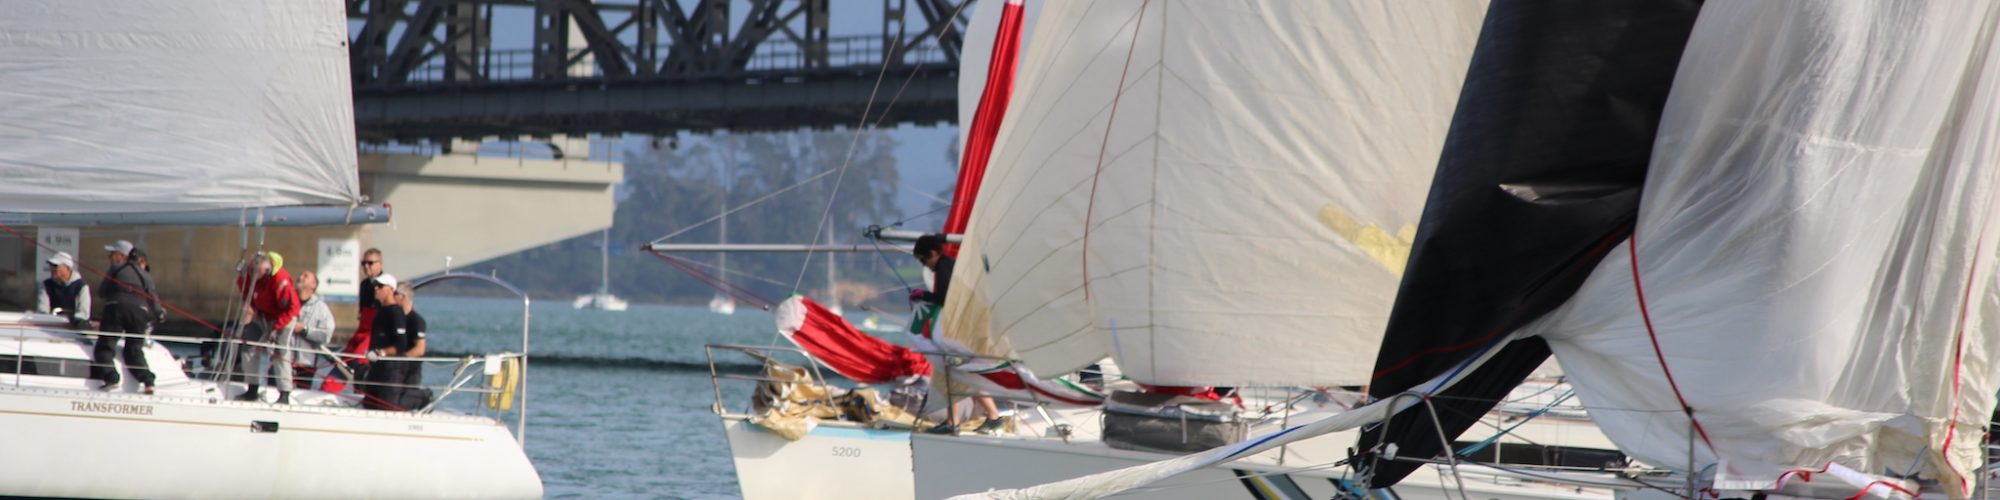 Westhaven Triple Series